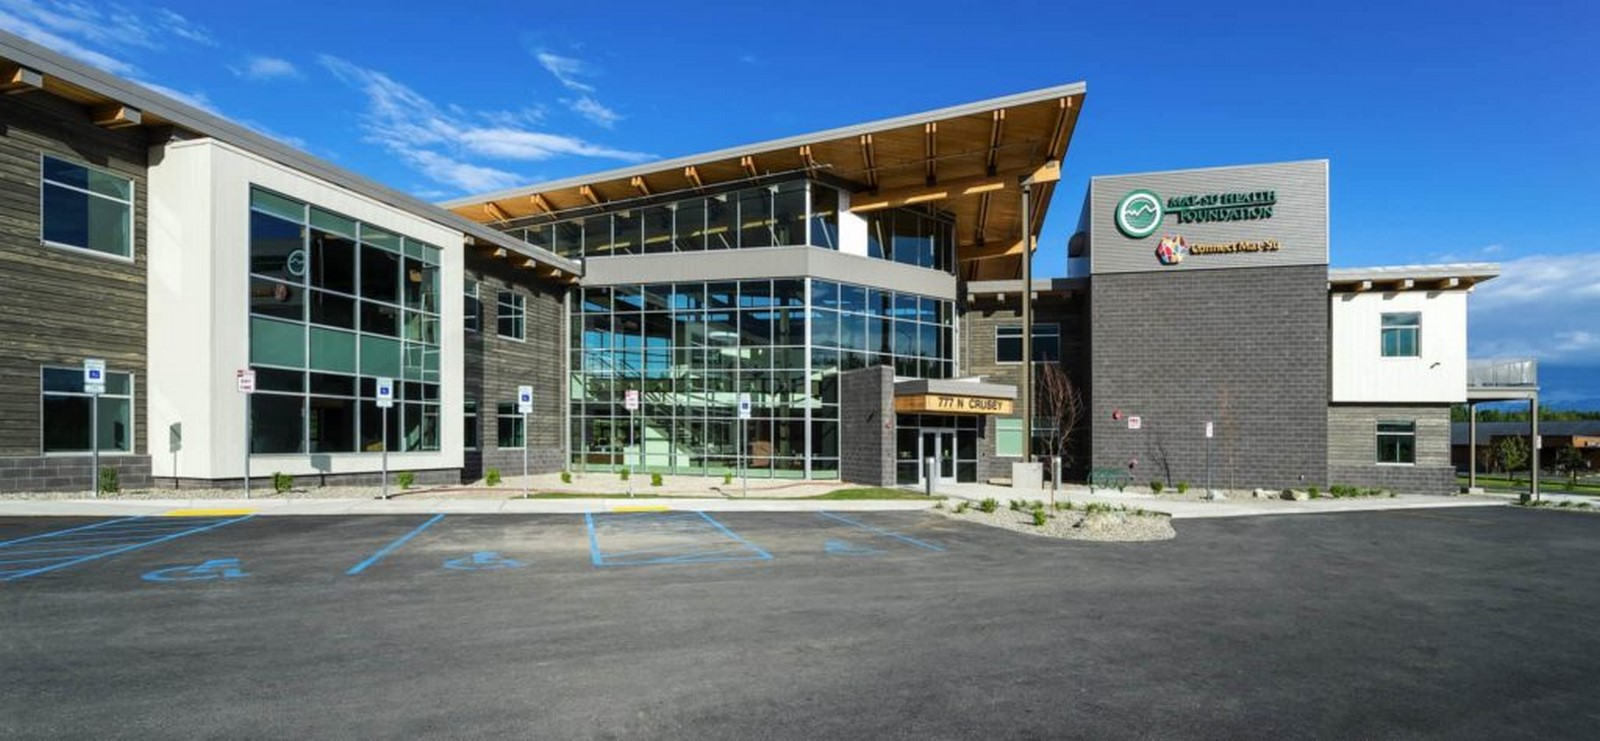 Architects in Anchorage- Top 20 Architects in Anchorage - Sheet3